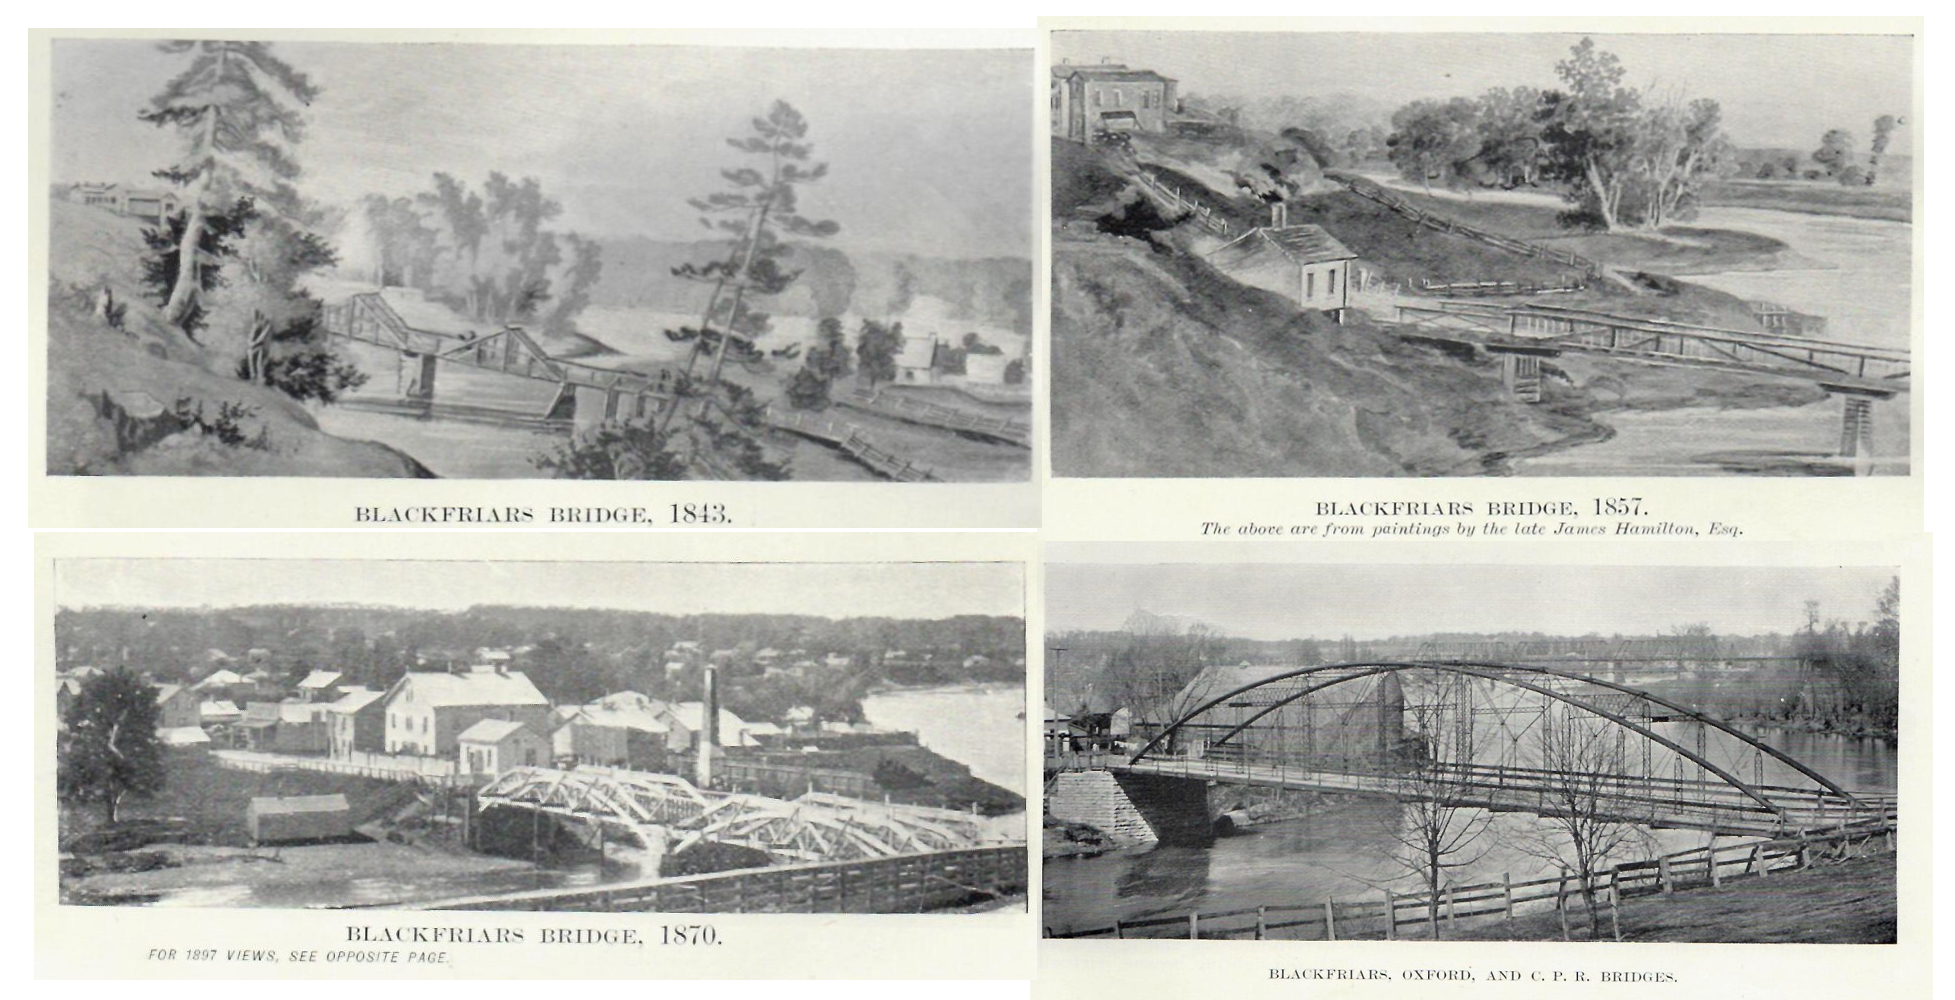 A series of images showing the progression of bridges at Blackfriars.